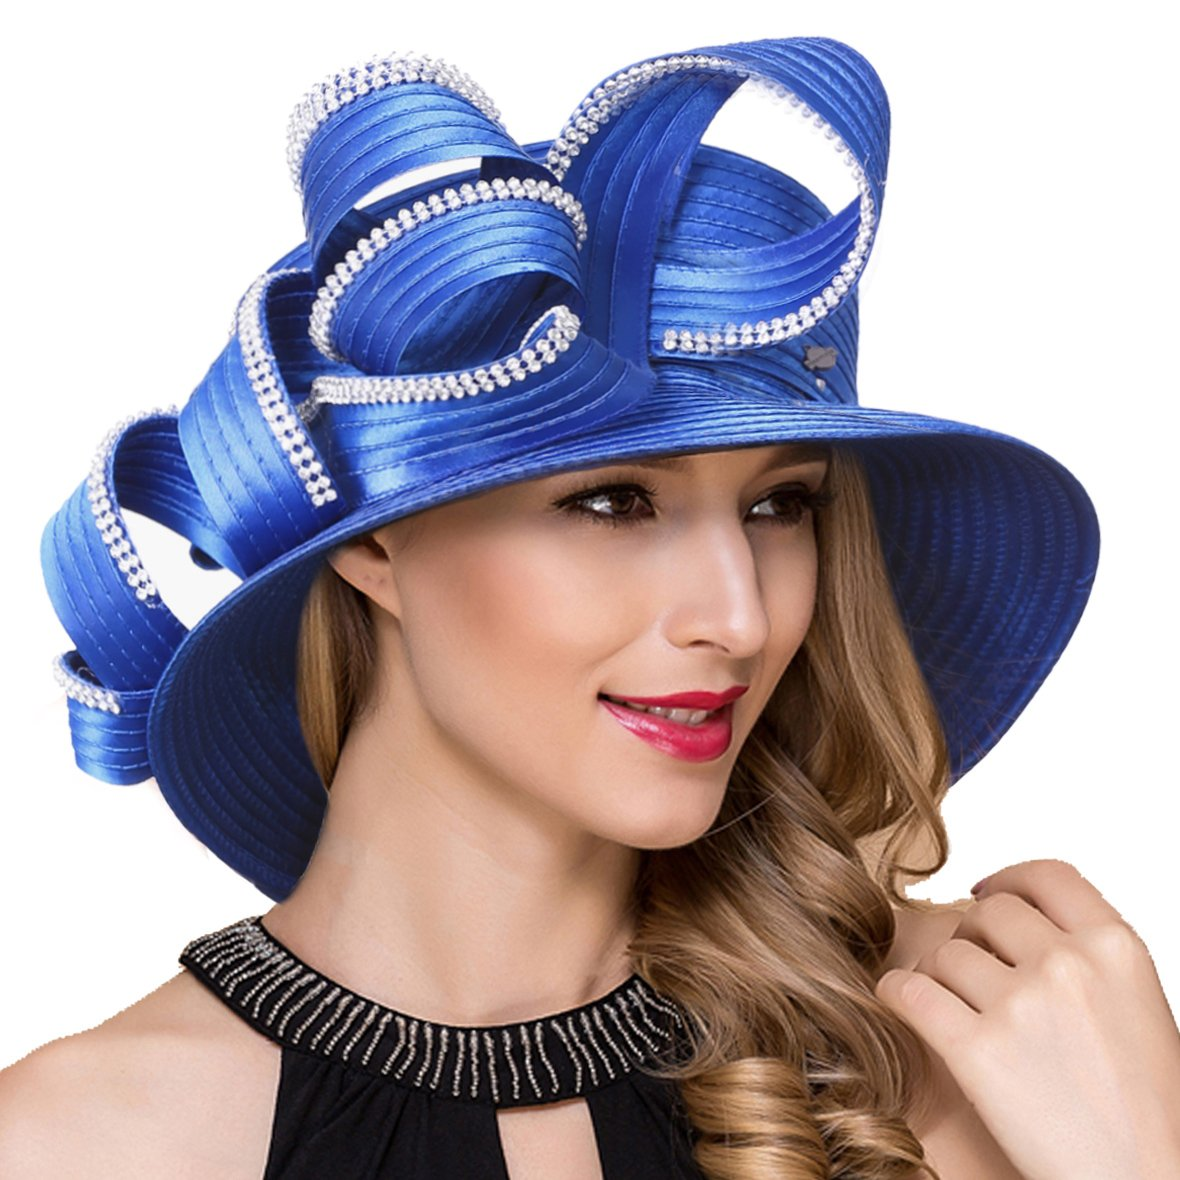 Lady Church Derby Dress Cloche Hat Fascinator Floral Tea Party Wedding Bucket Hat S051 (SD708-Royal Blue)